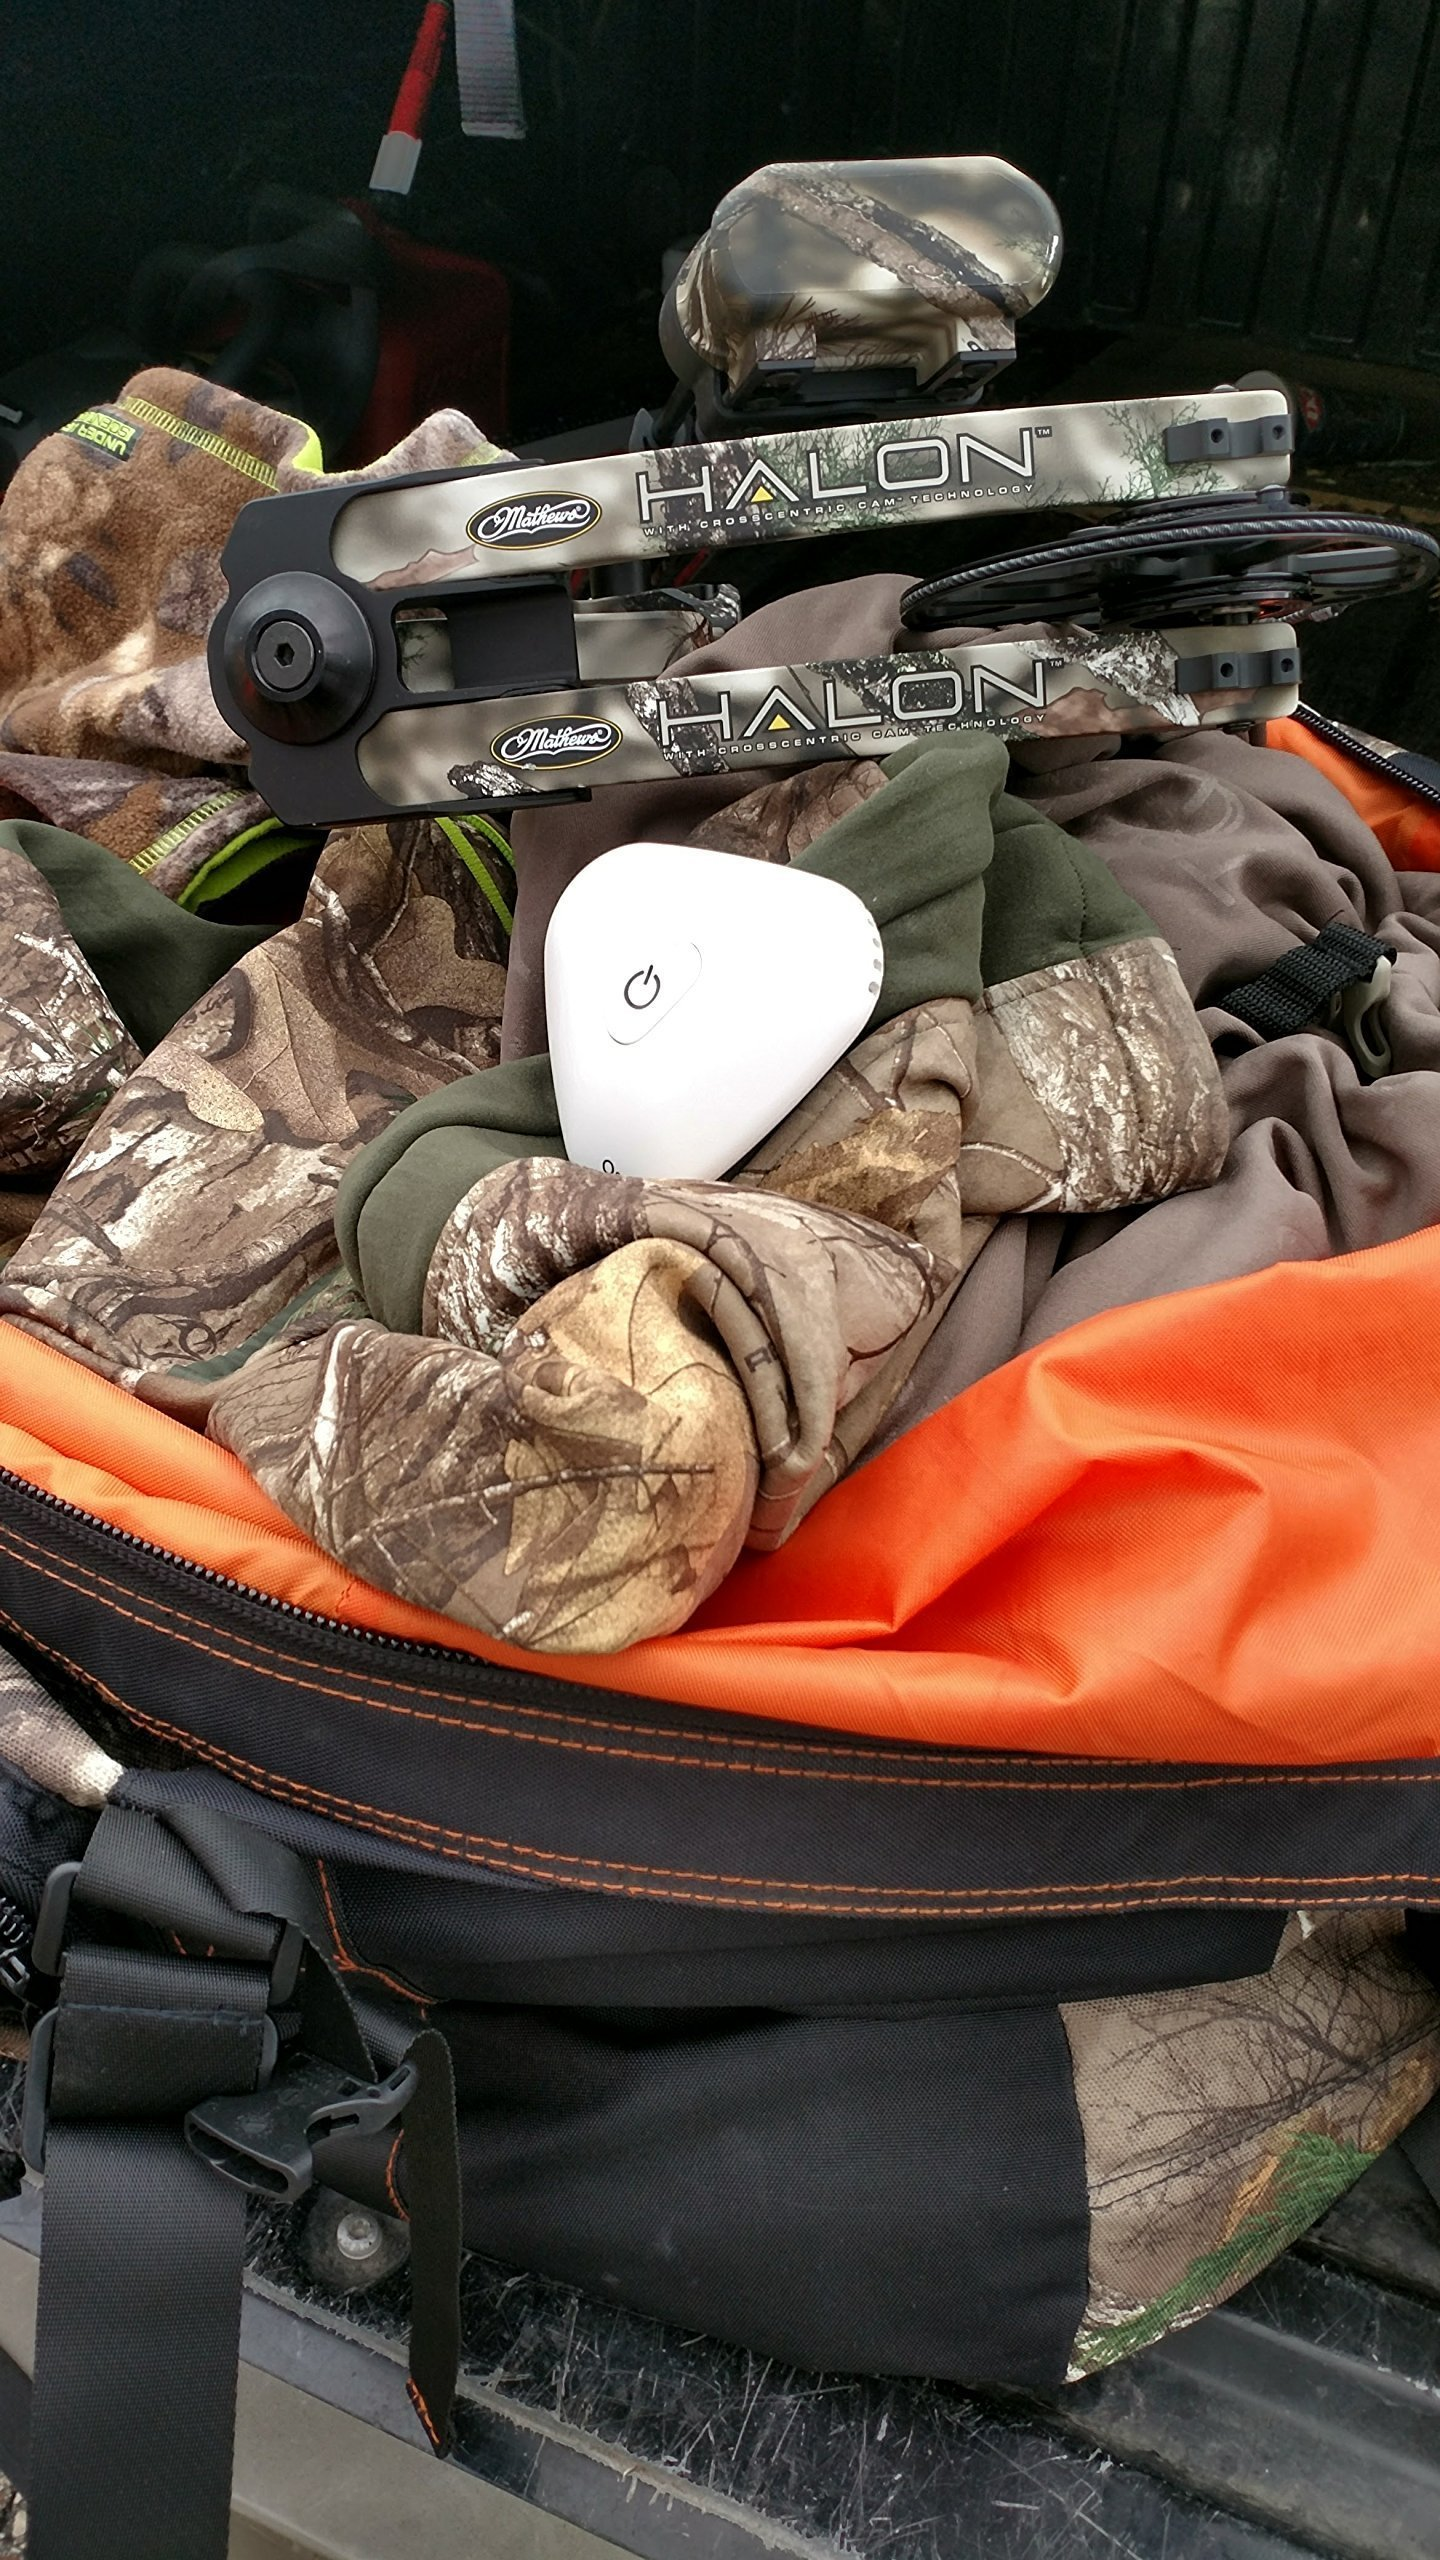 BoneView Mobile Ozone Machine Ozone Generator, Lithium Battery Powered Odor Elimination System for Your Deer Hunting Gear Bag with Powerful Triple Oxygen Scent Crushing Technology, White by BoneView (Image #1)